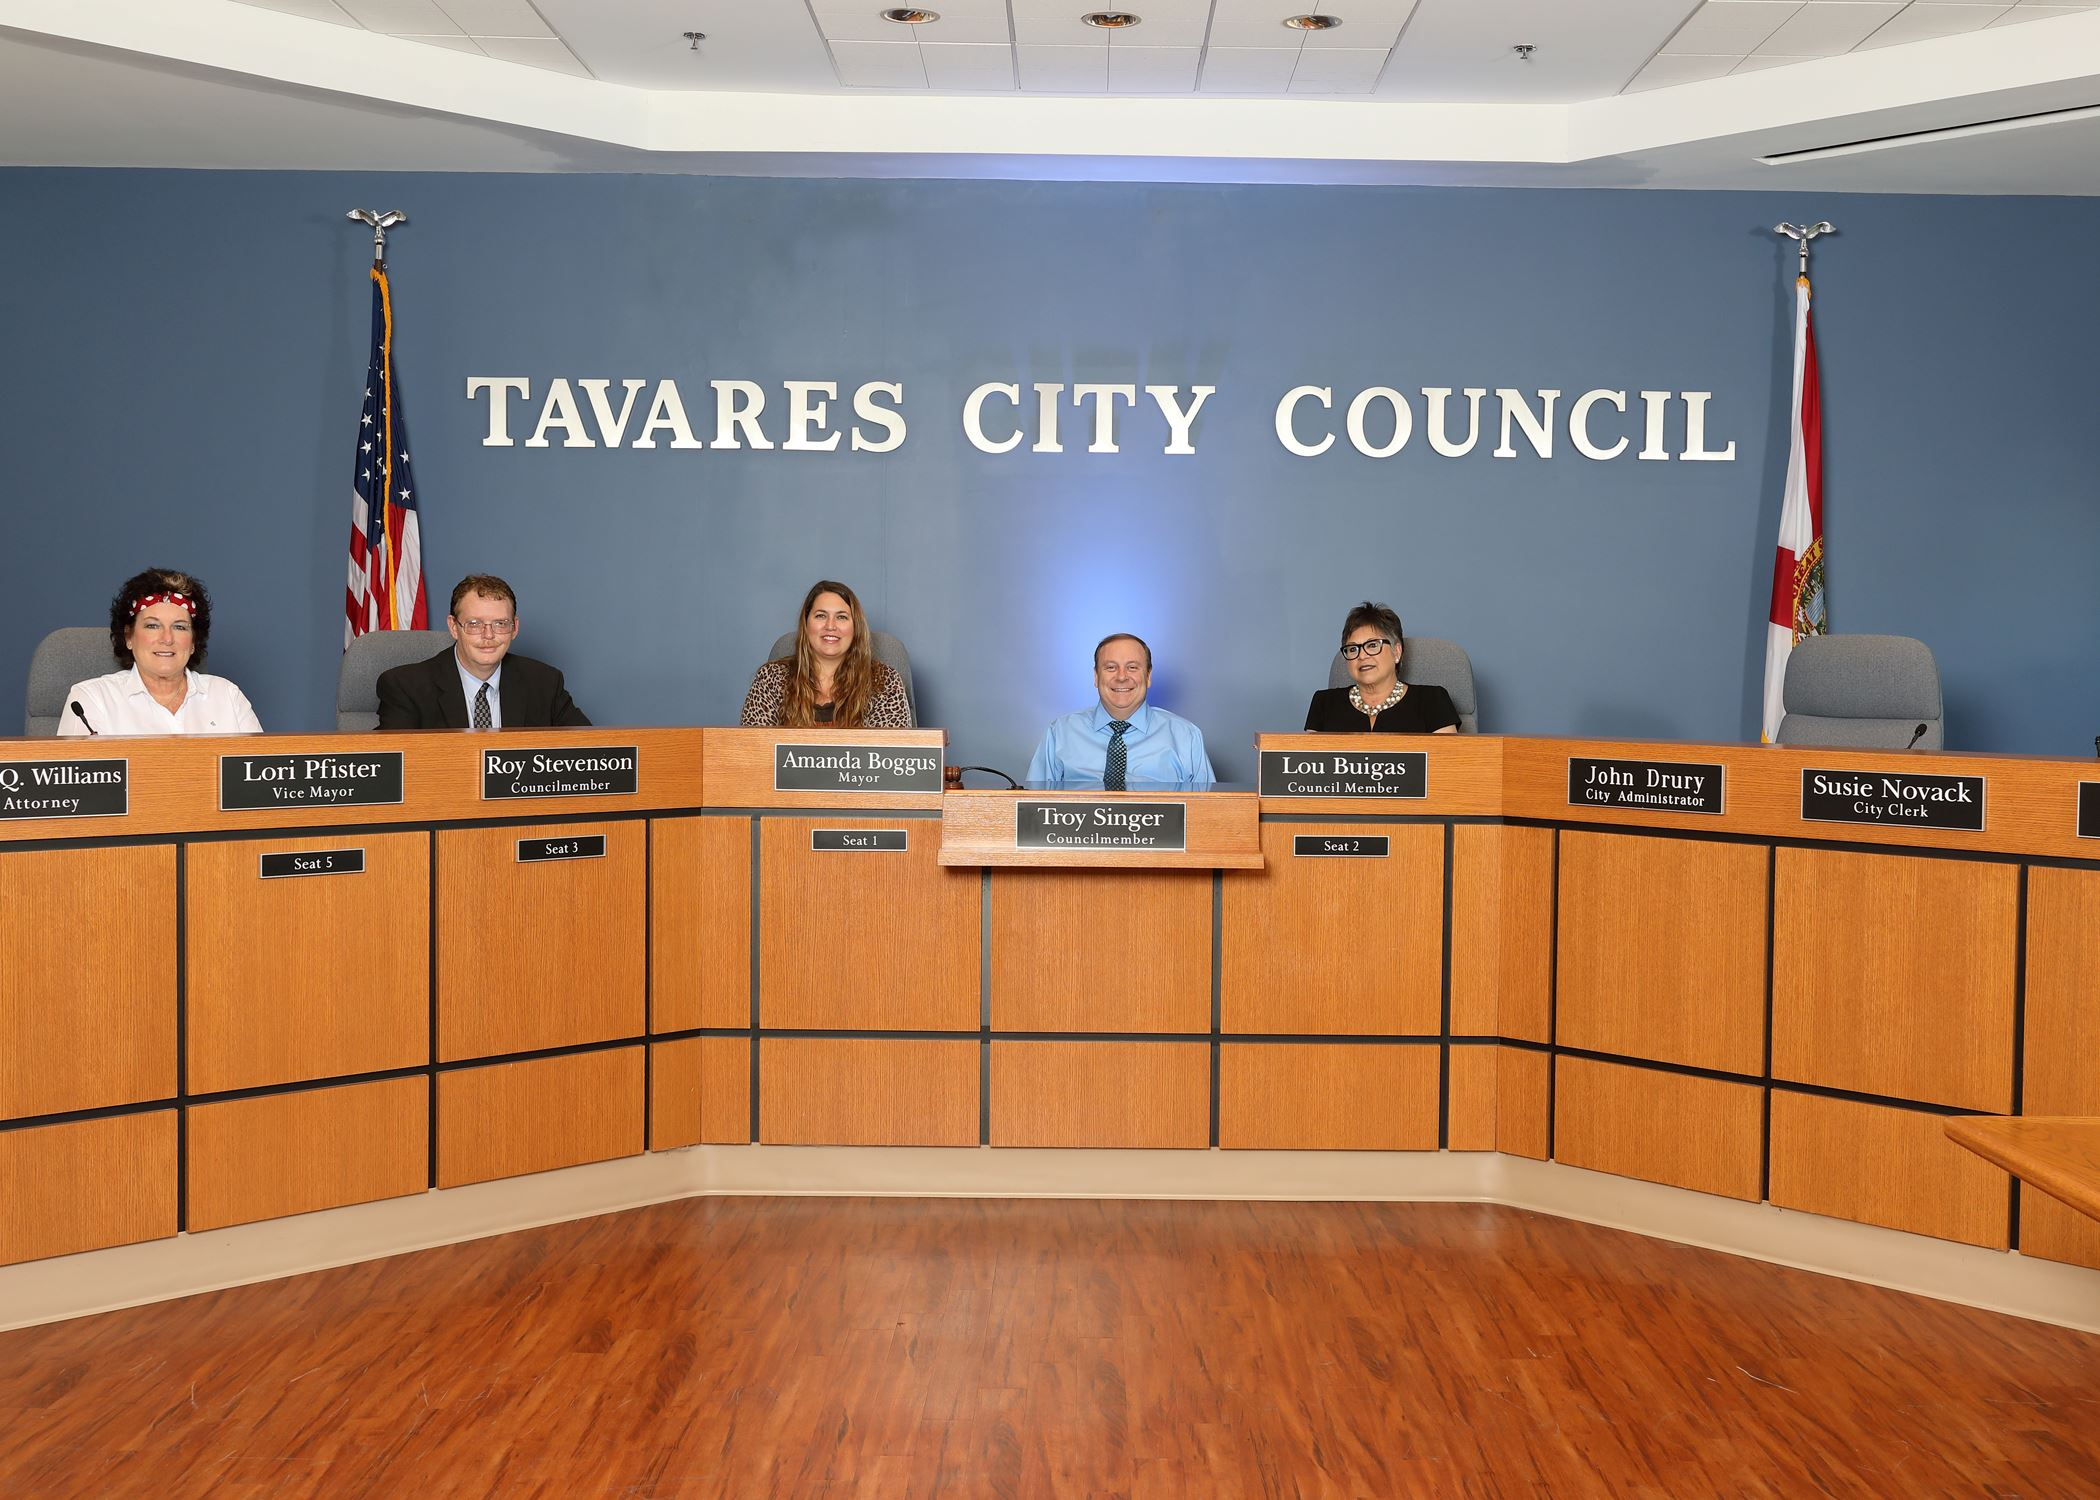 Image of Tavares City Council (Left to Right, Lori Pfister, Roy Stevenson, Amanda Boggus, Troy Singe